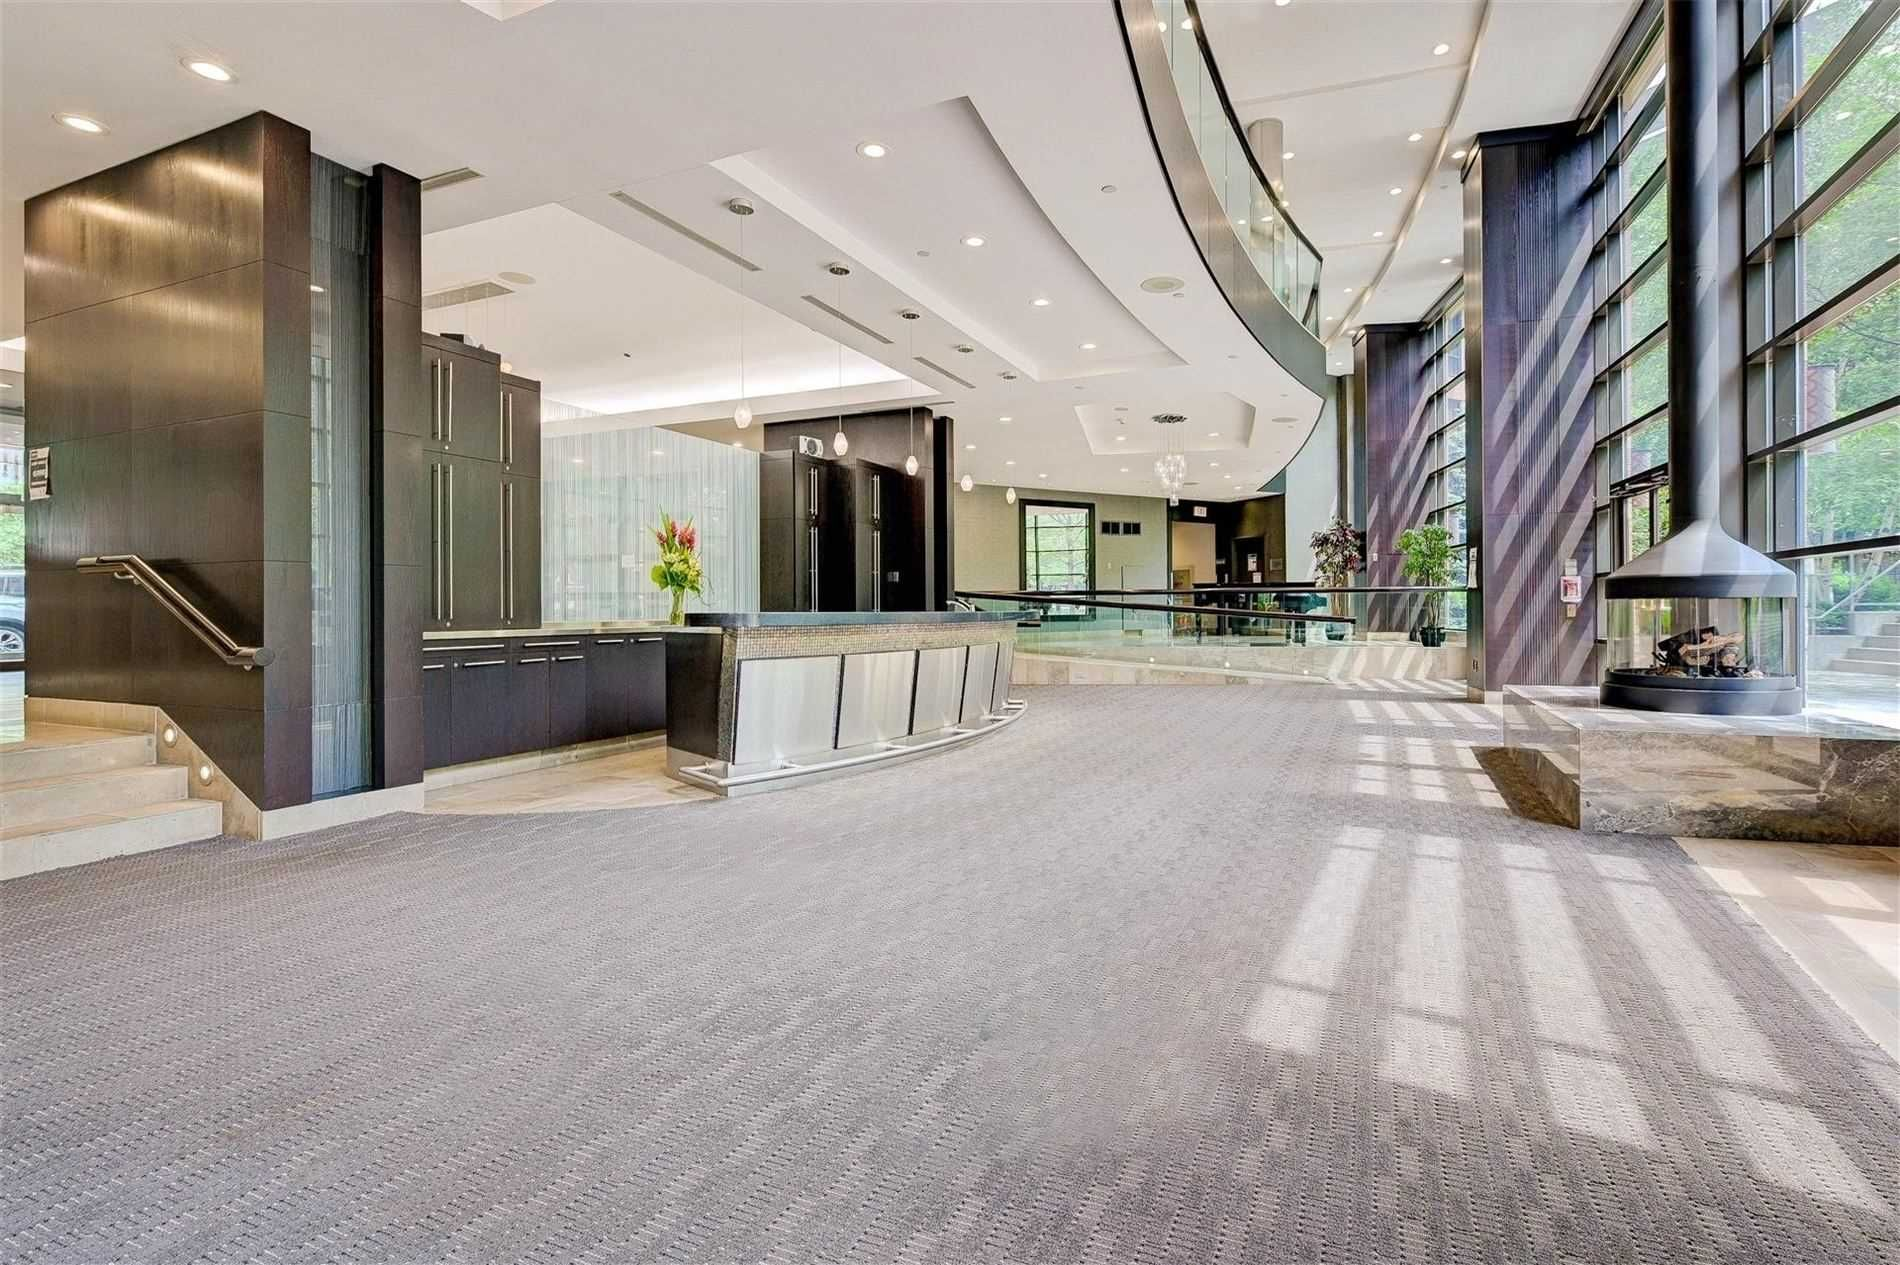 23 Sheppard Ave E, unit 801 for sale in Toronto - image #2